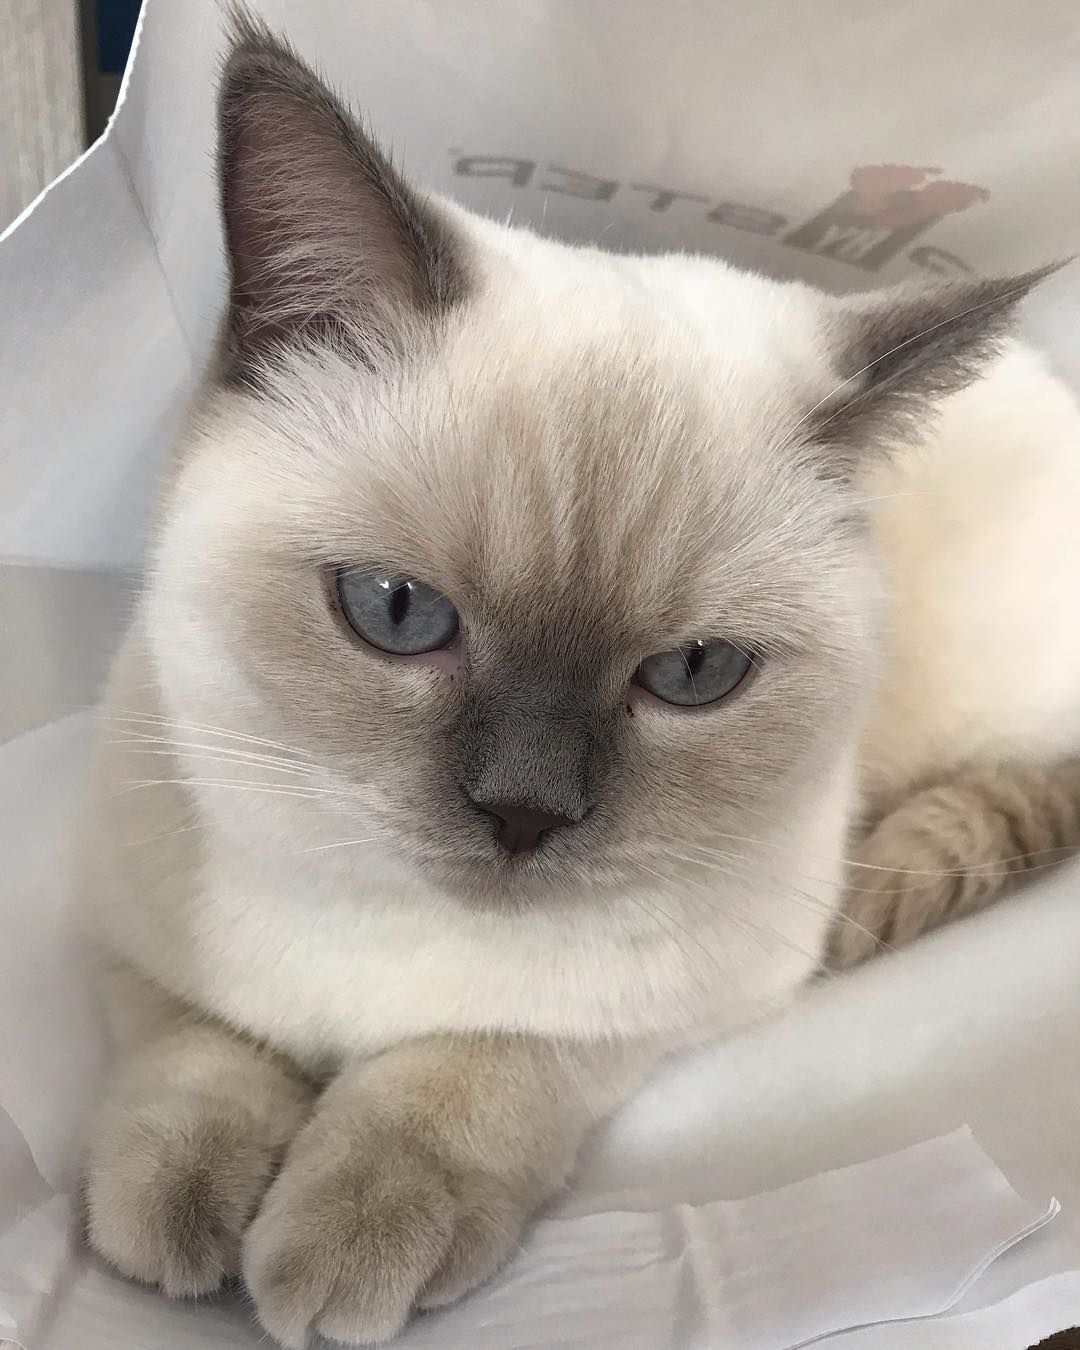 Alice Mix Breed British Shorthair And Scottish Fold Britishshorthair Scottishfold Cat Cats Of World Catphotography Whitecat Longhairedcat ᵔᴥᵔ